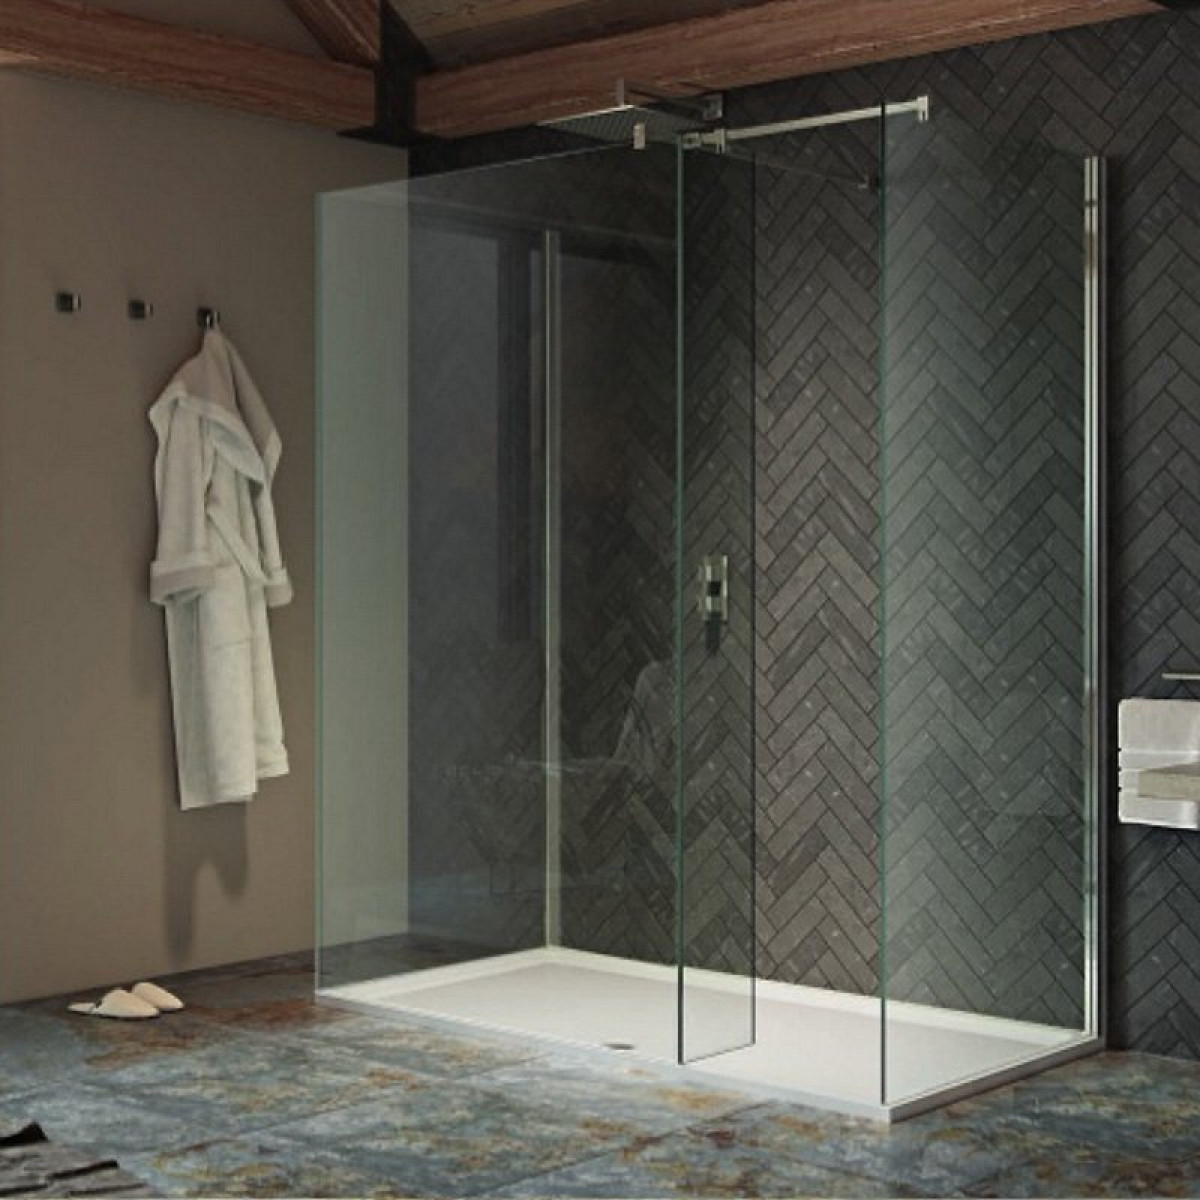 Kudos Ultimate2 8mm Three Sided 1600mm Walk-in Shower Enclosure -